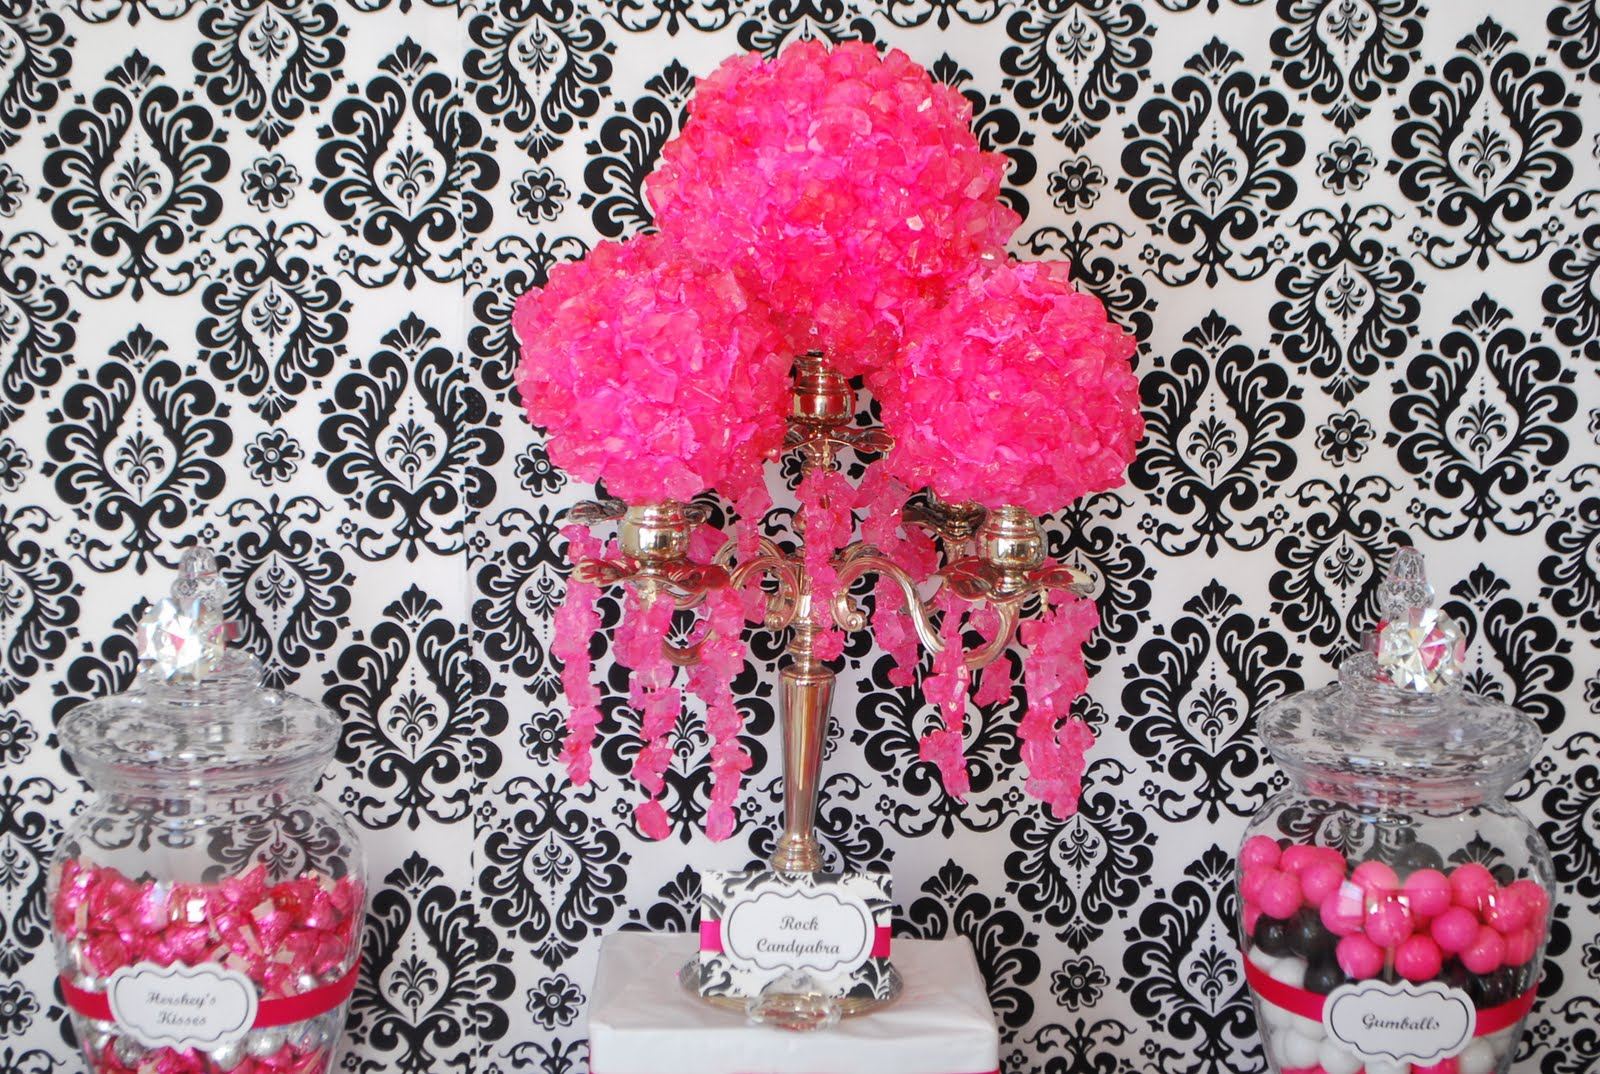 Diy how to create rock candy topiary balls